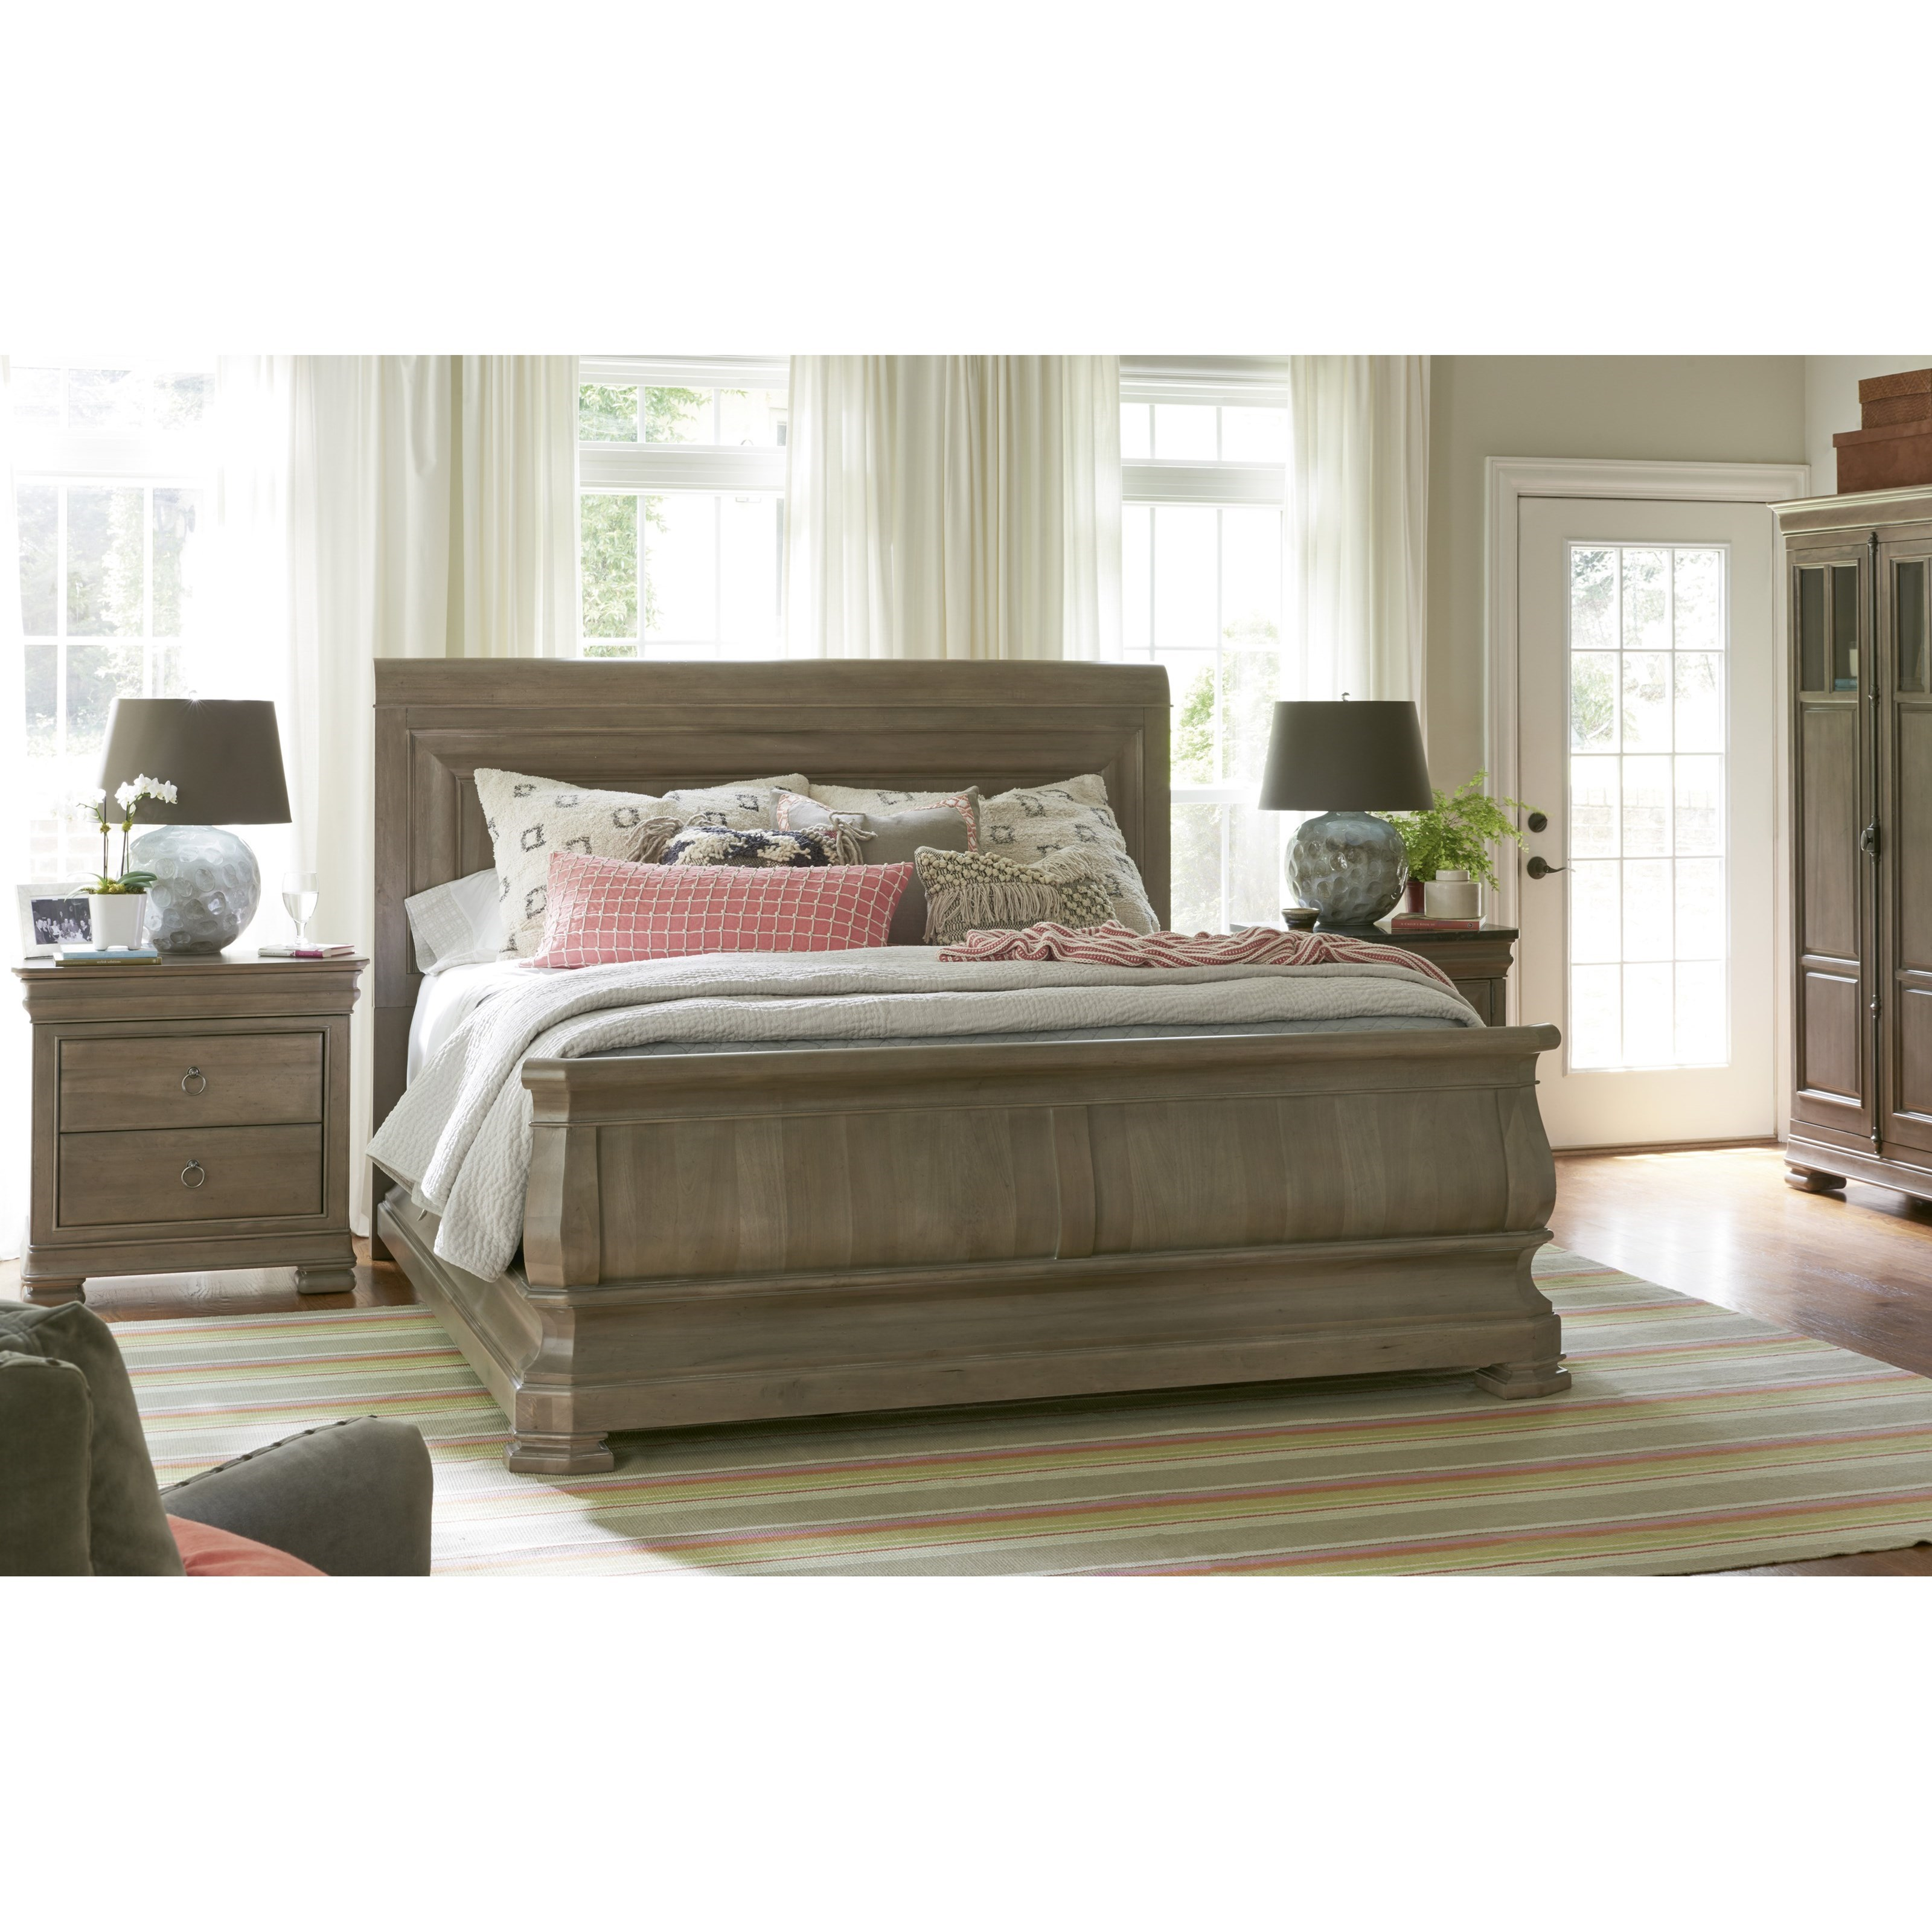 Reprise King Bedroom Group by Universal at Baer's Furniture